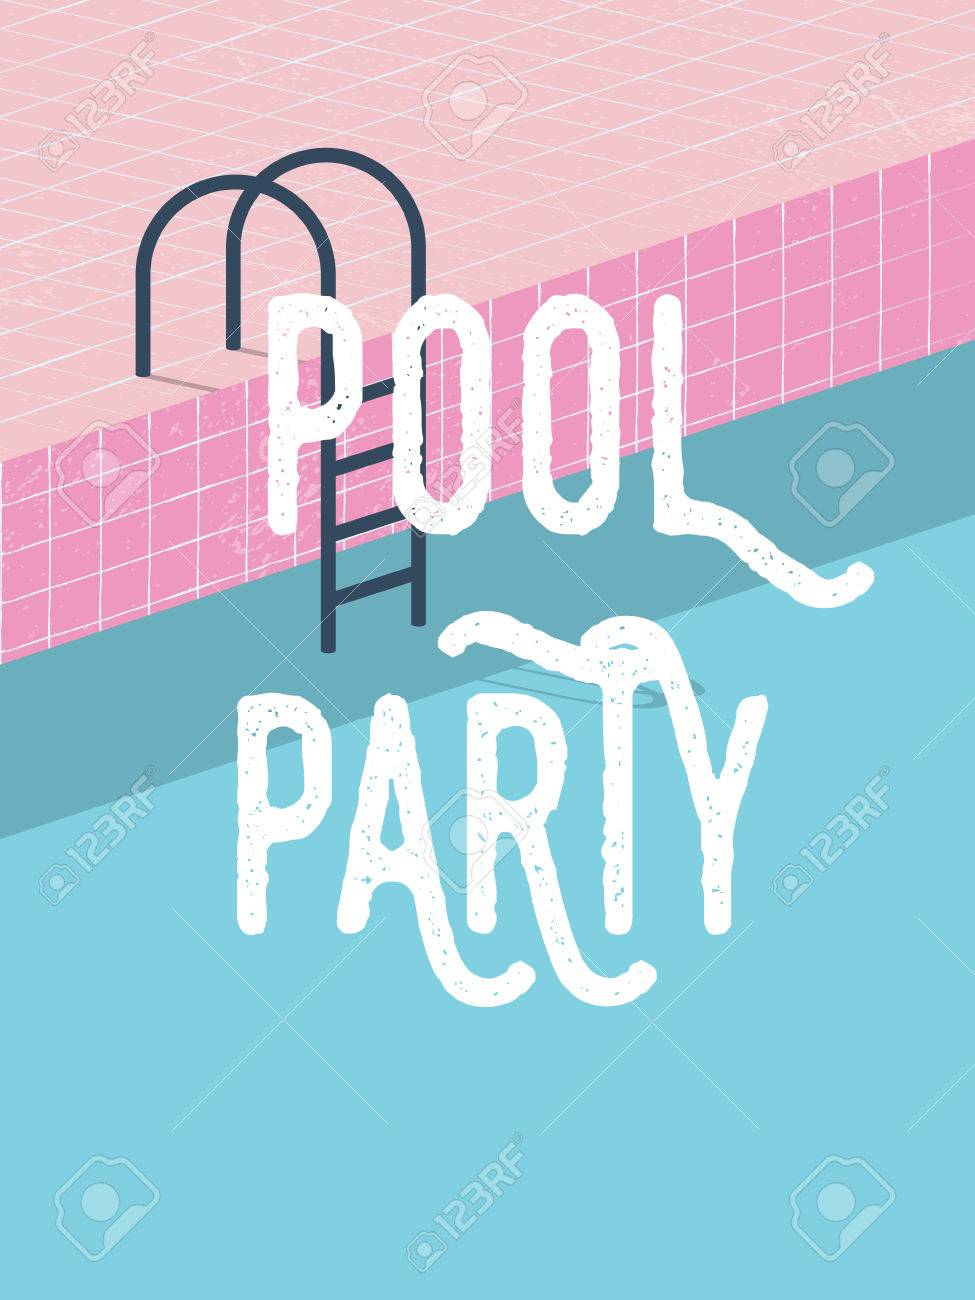 Pool Party In Summer Invitation Poster Template Concept With ...